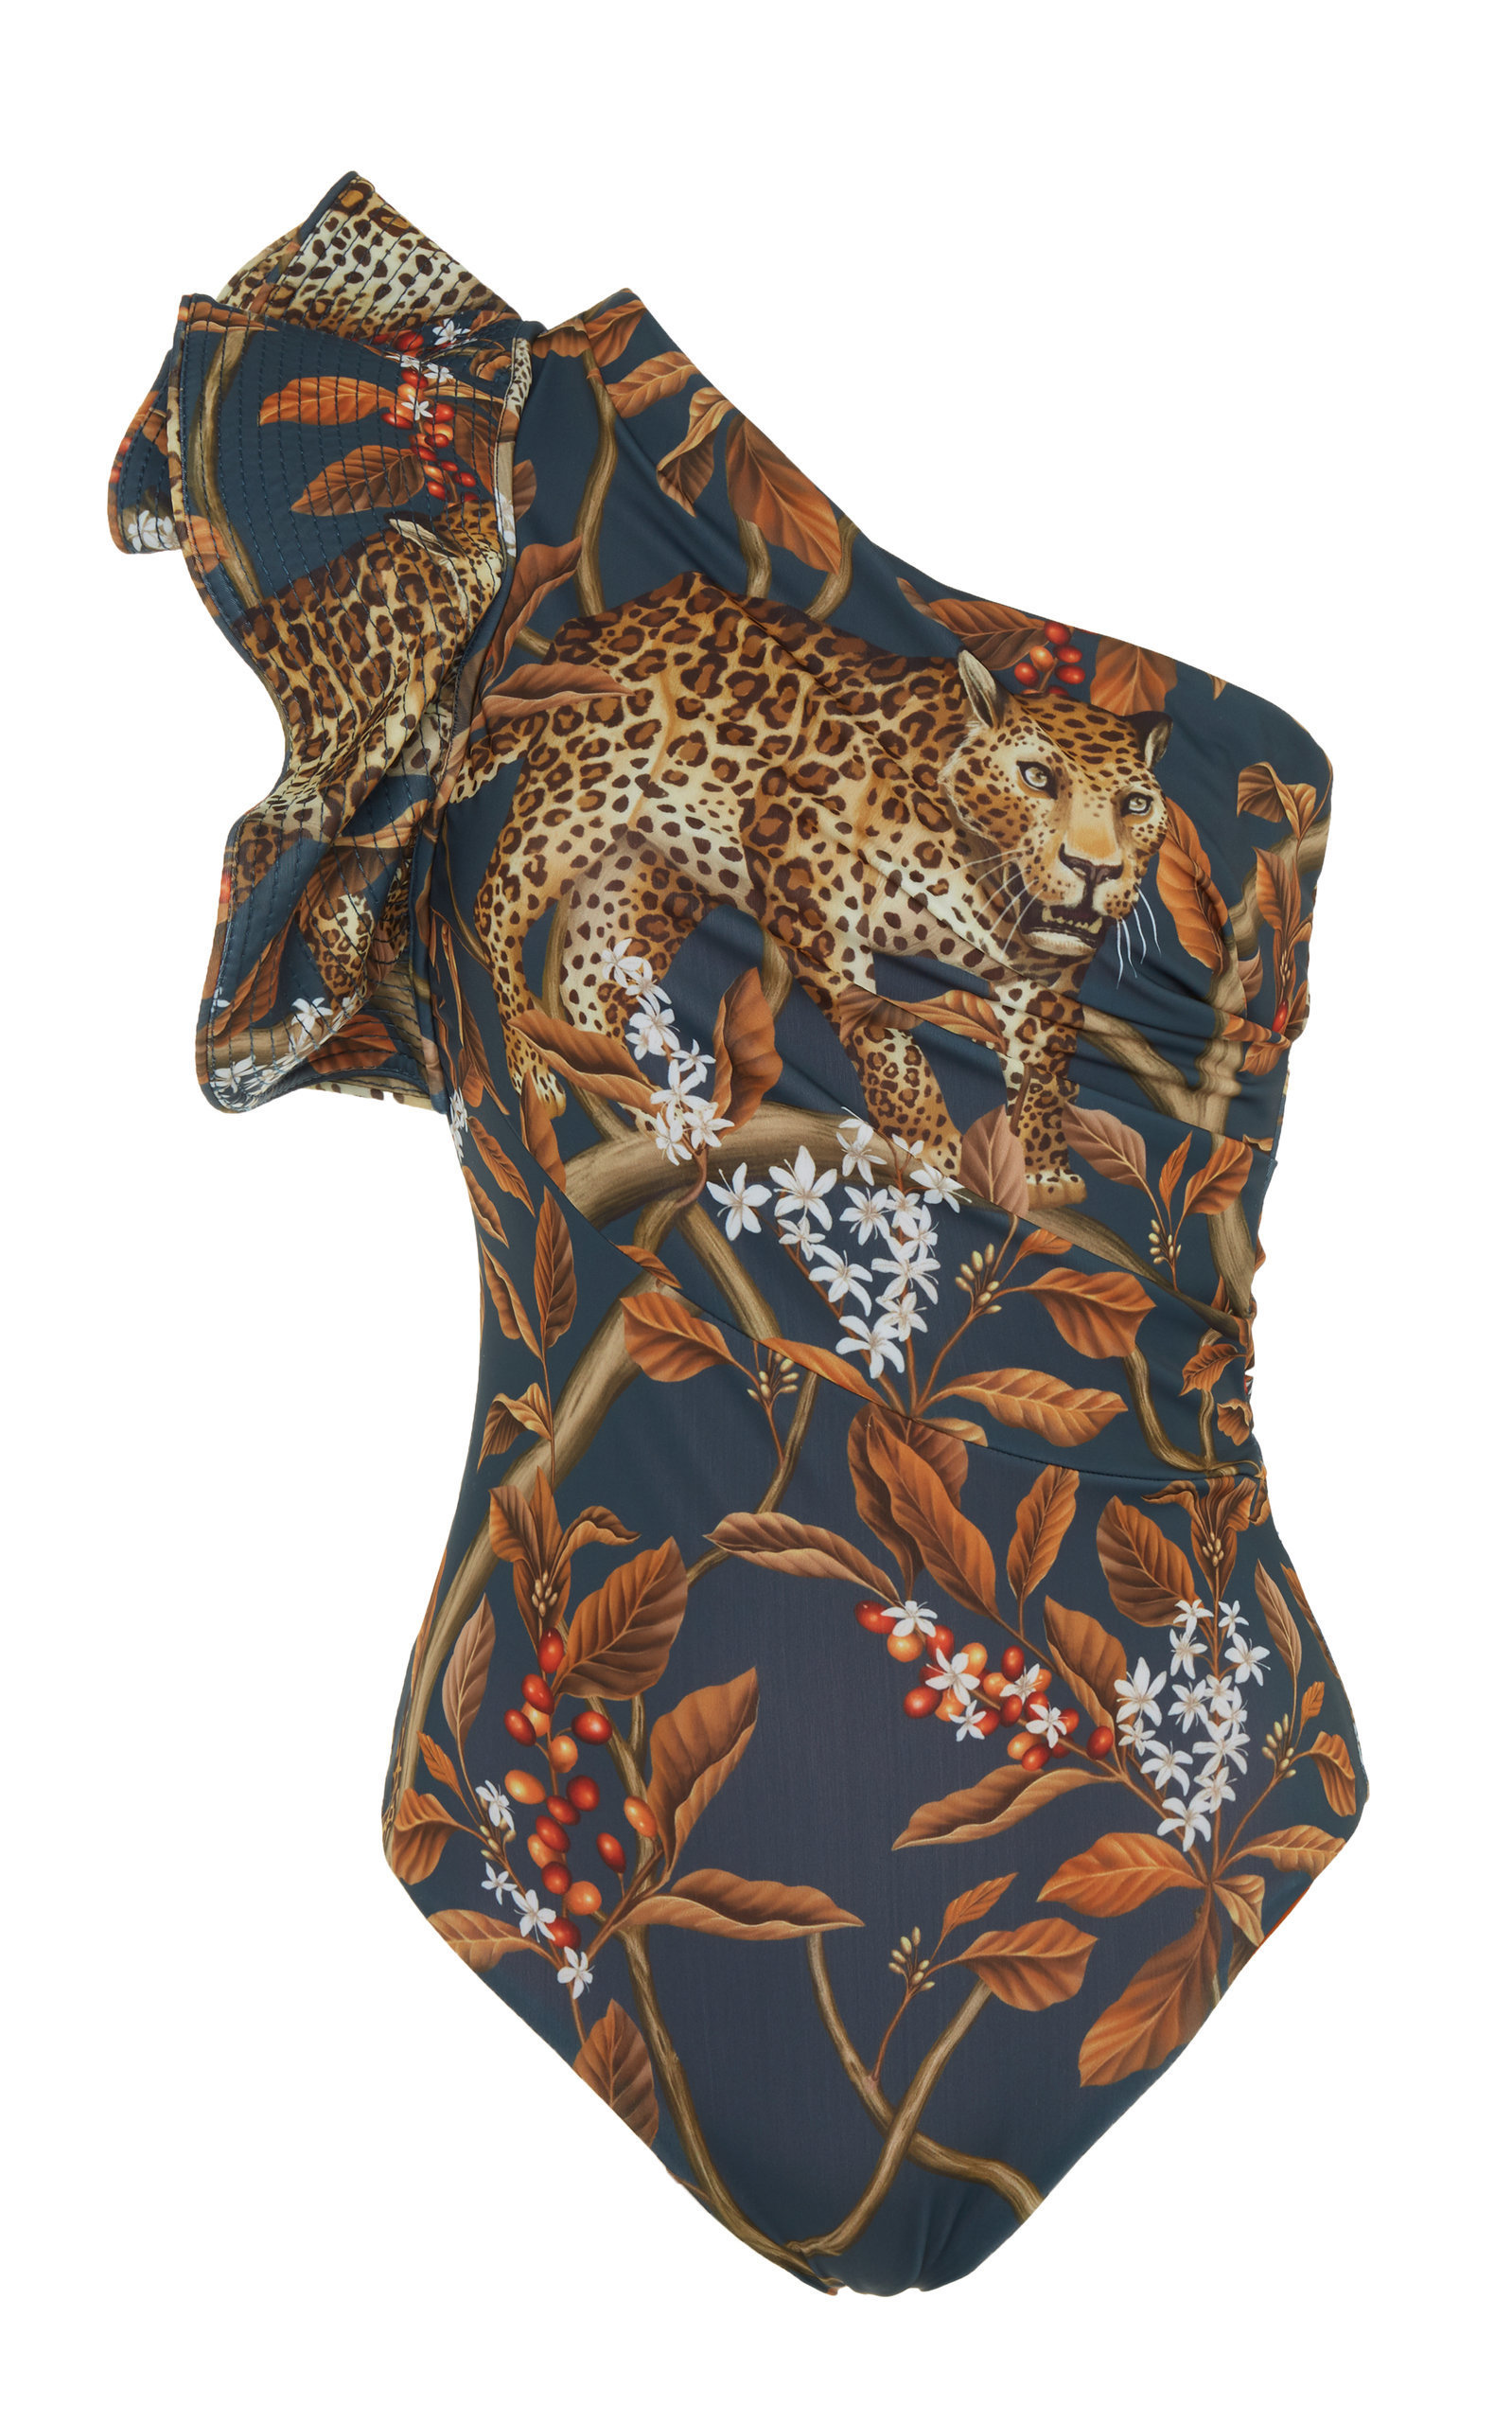 Indonesian Desire Printed One-Shoulder Swimsuit | $545